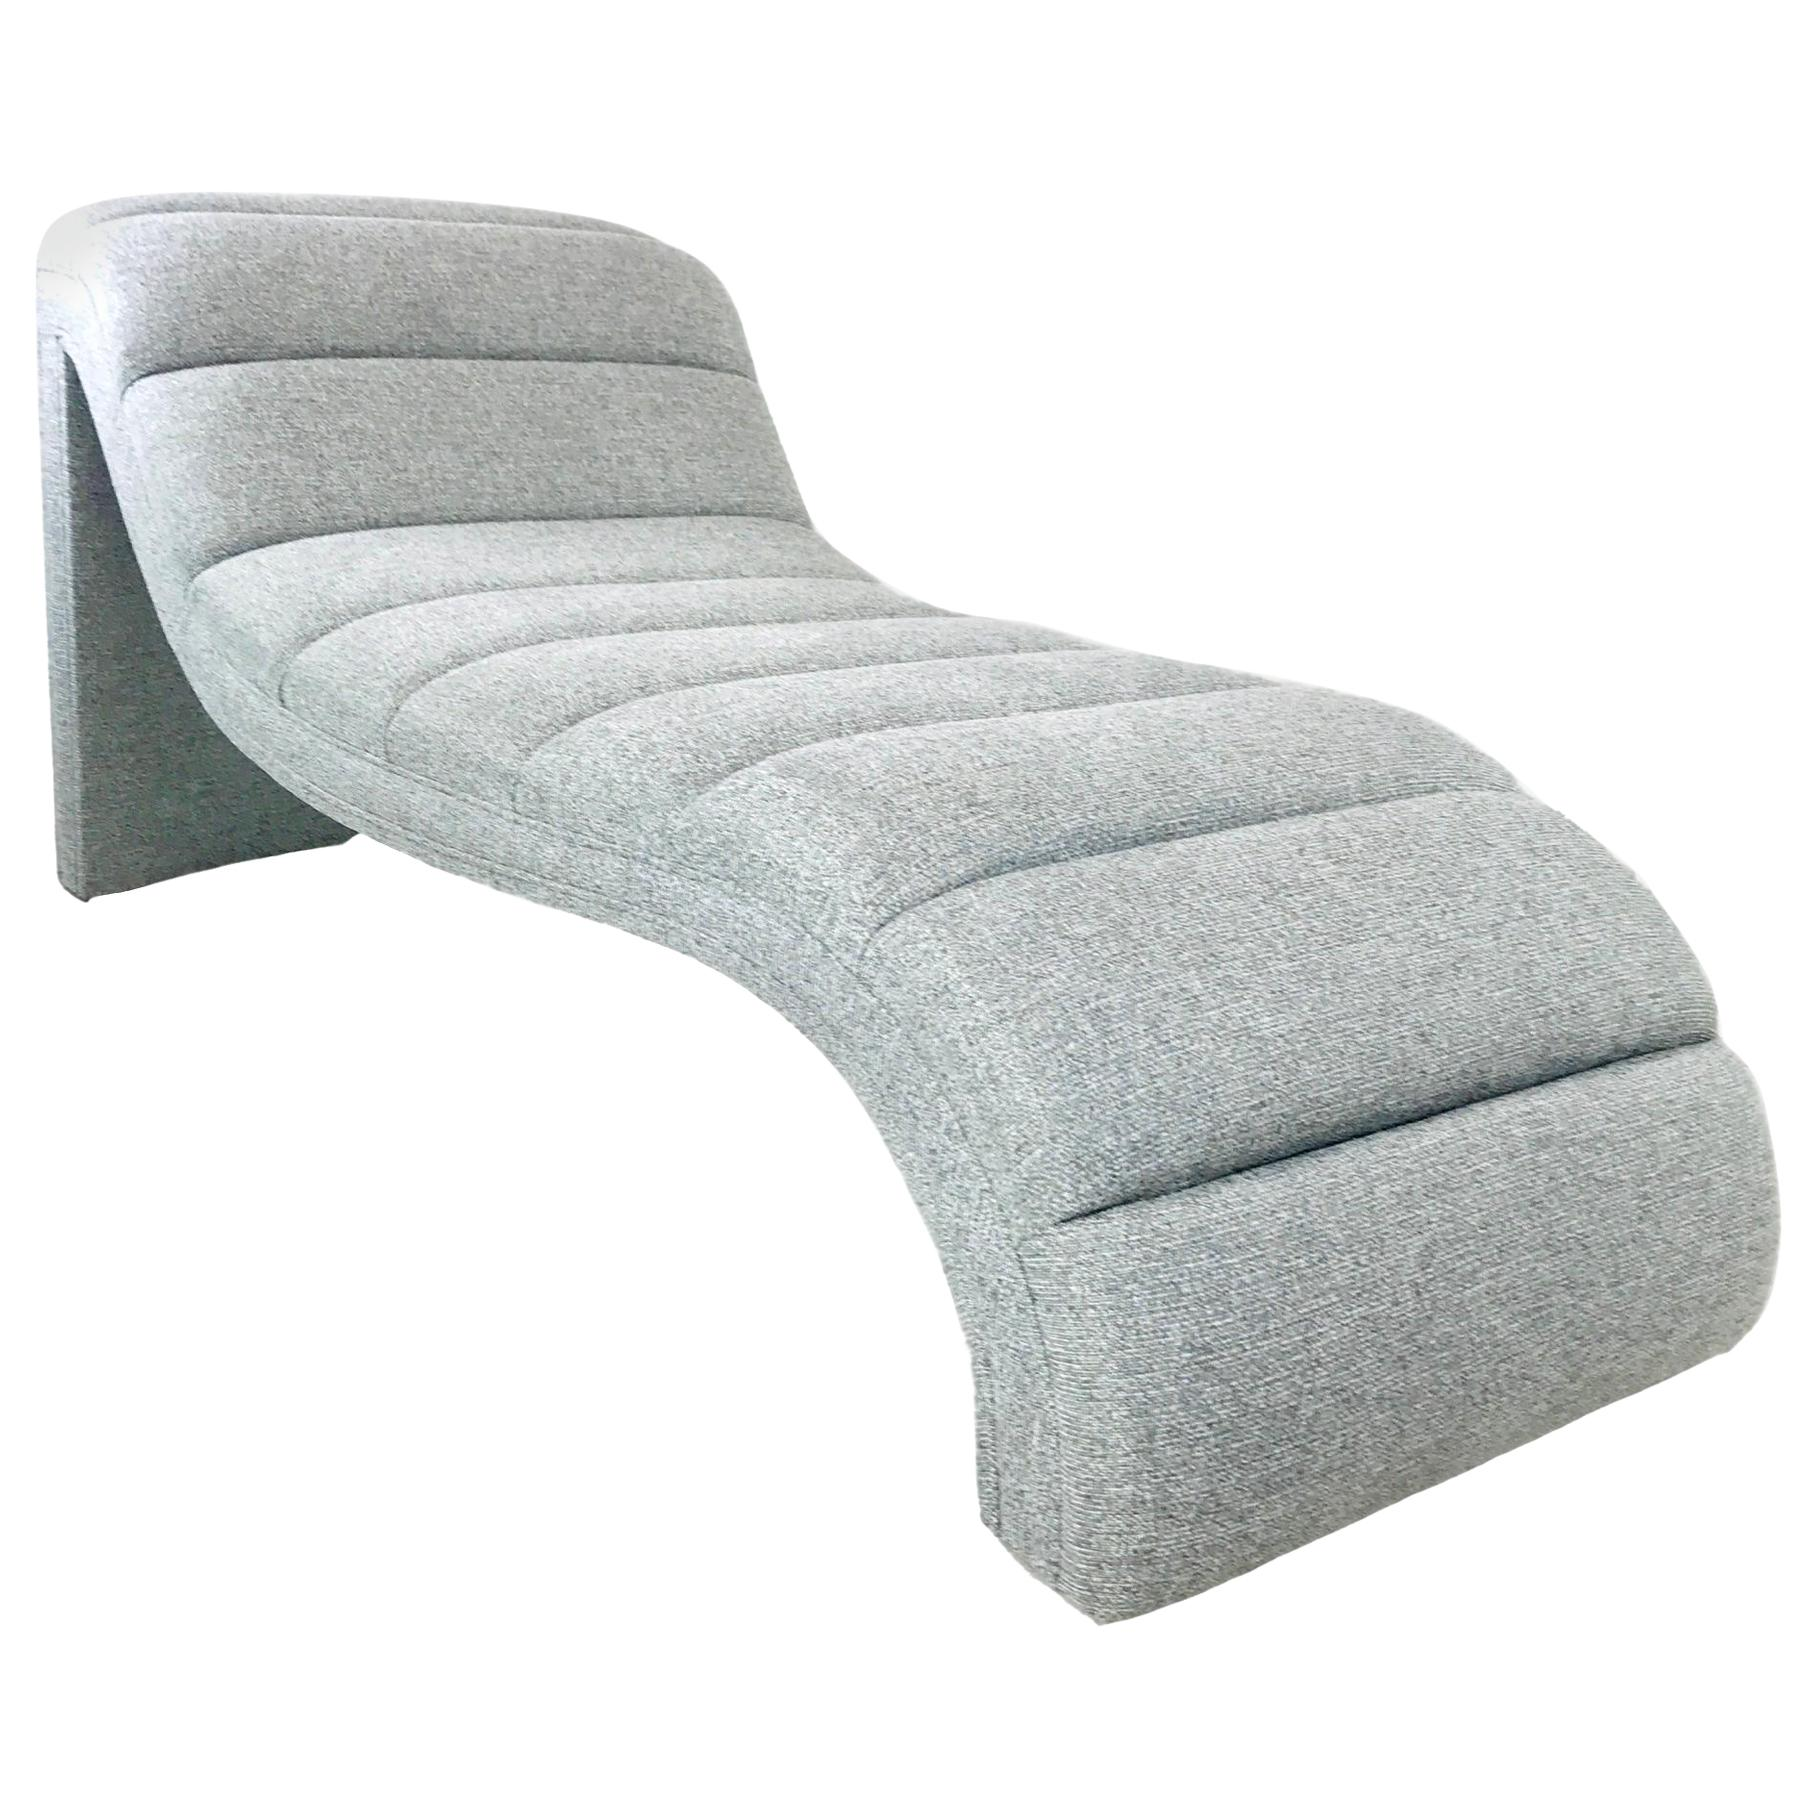 Custom Chaise Lounge